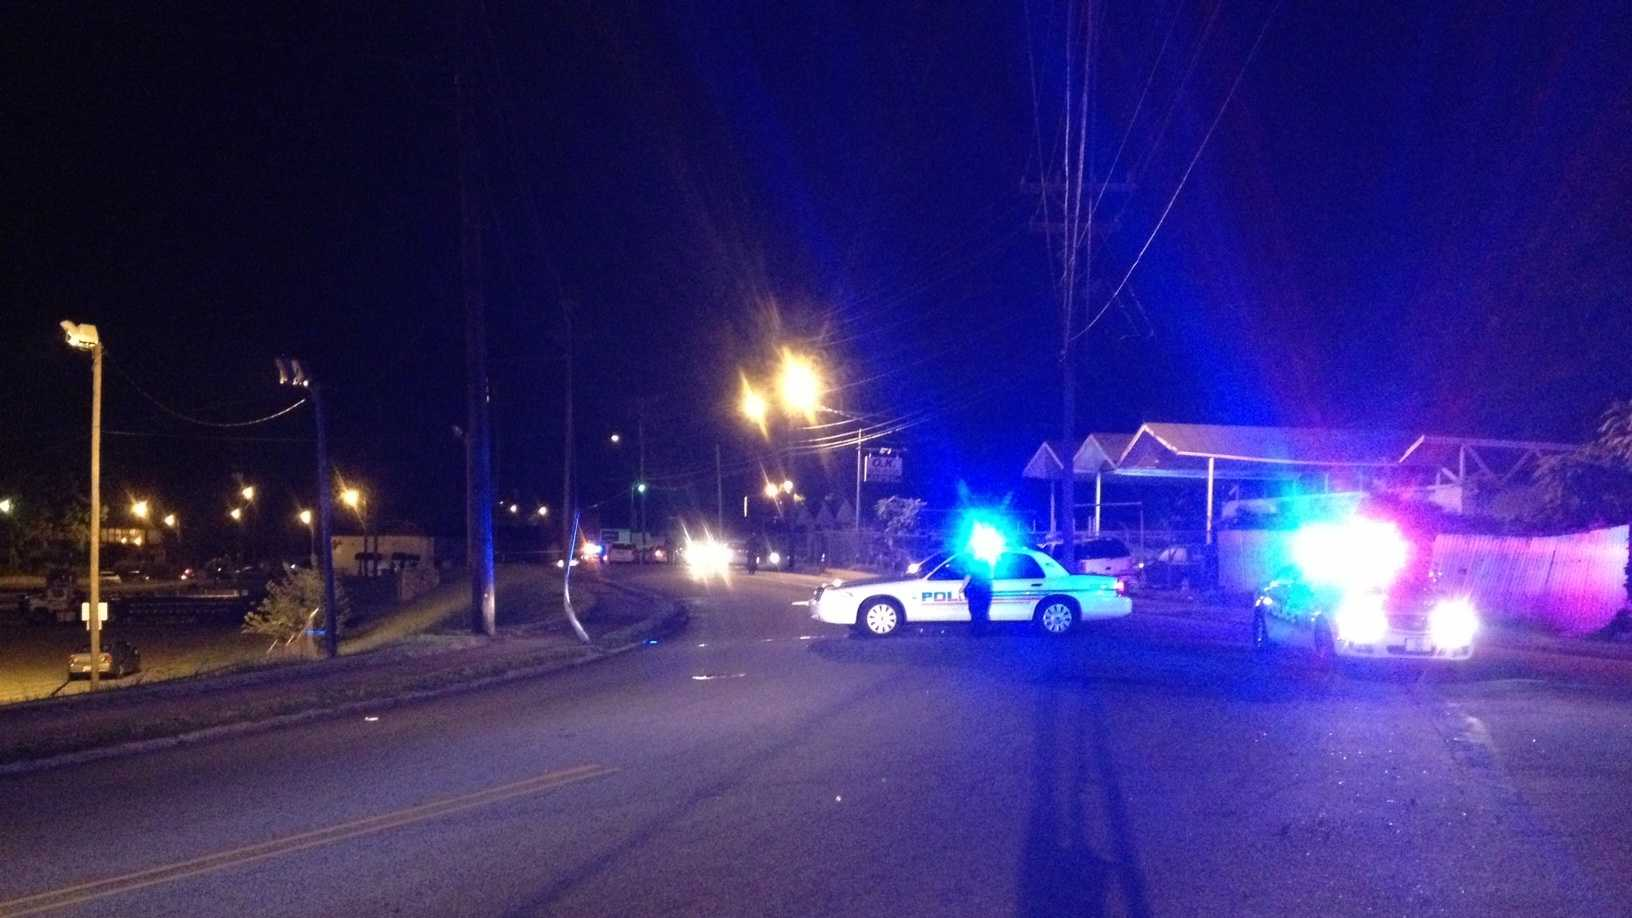 Police are investigating a deadly shooting that happened early Friday morning on Northwest Blvd. in Winston-Salem.